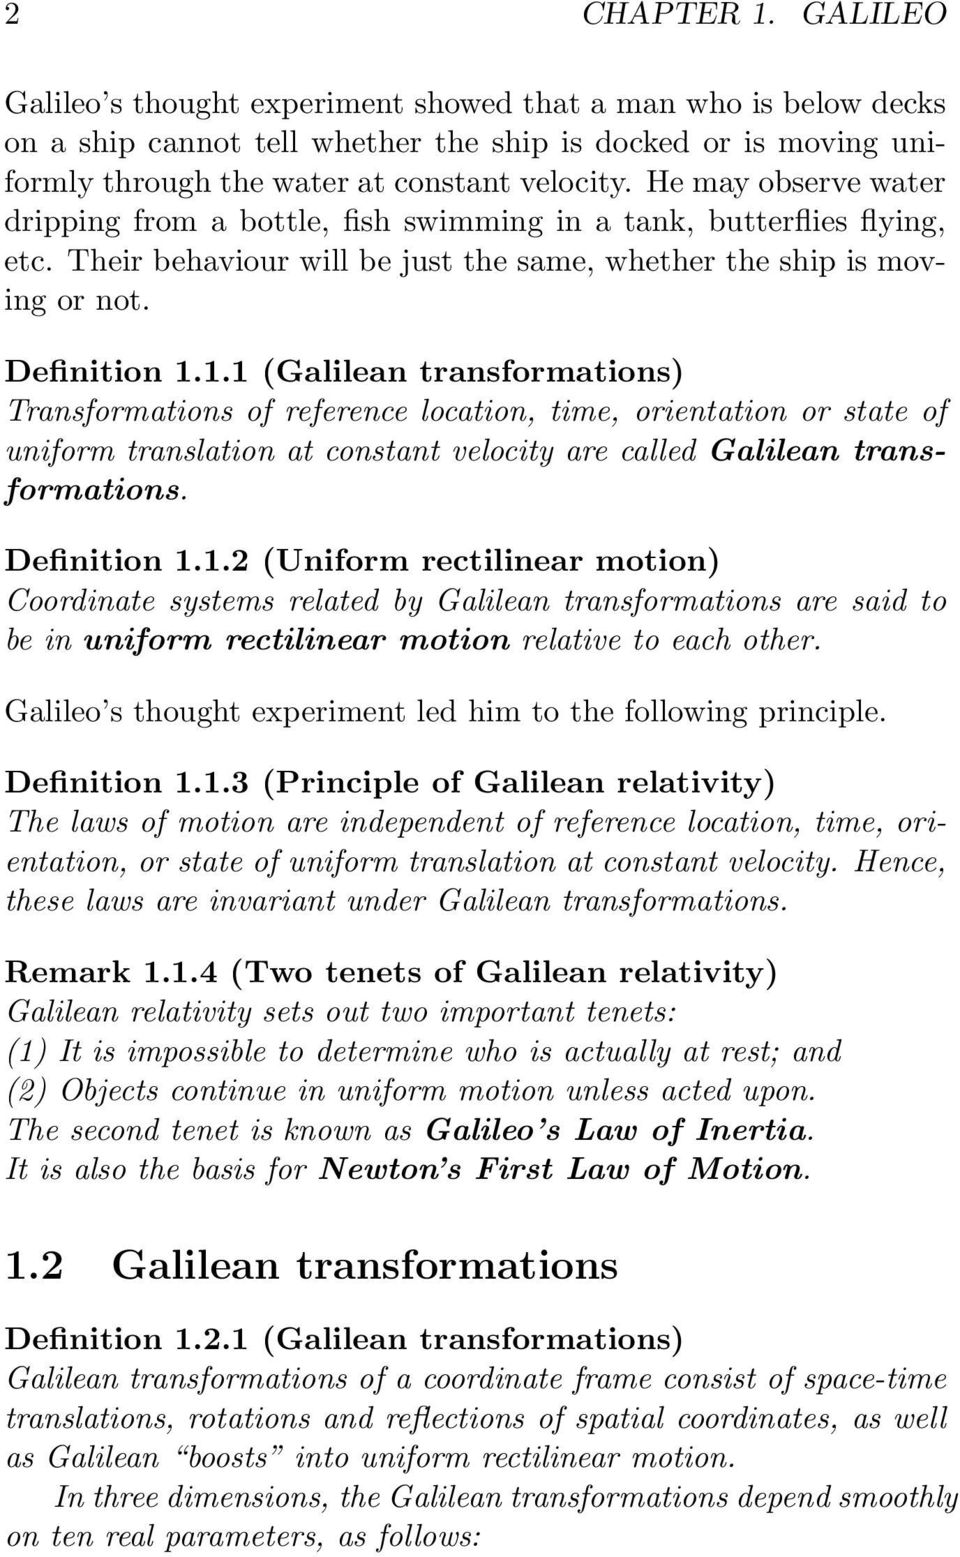 1.1 (Galilean transformations) Transformations of reference location, time, orientation or state of uniform translation at constant velocity are called Galilean transformations. Definition 1.1.2 (Uniform rectilinear motion) Coordinate systems related by Galilean transformations are said to be in uniform rectilinear motion relative to each other.